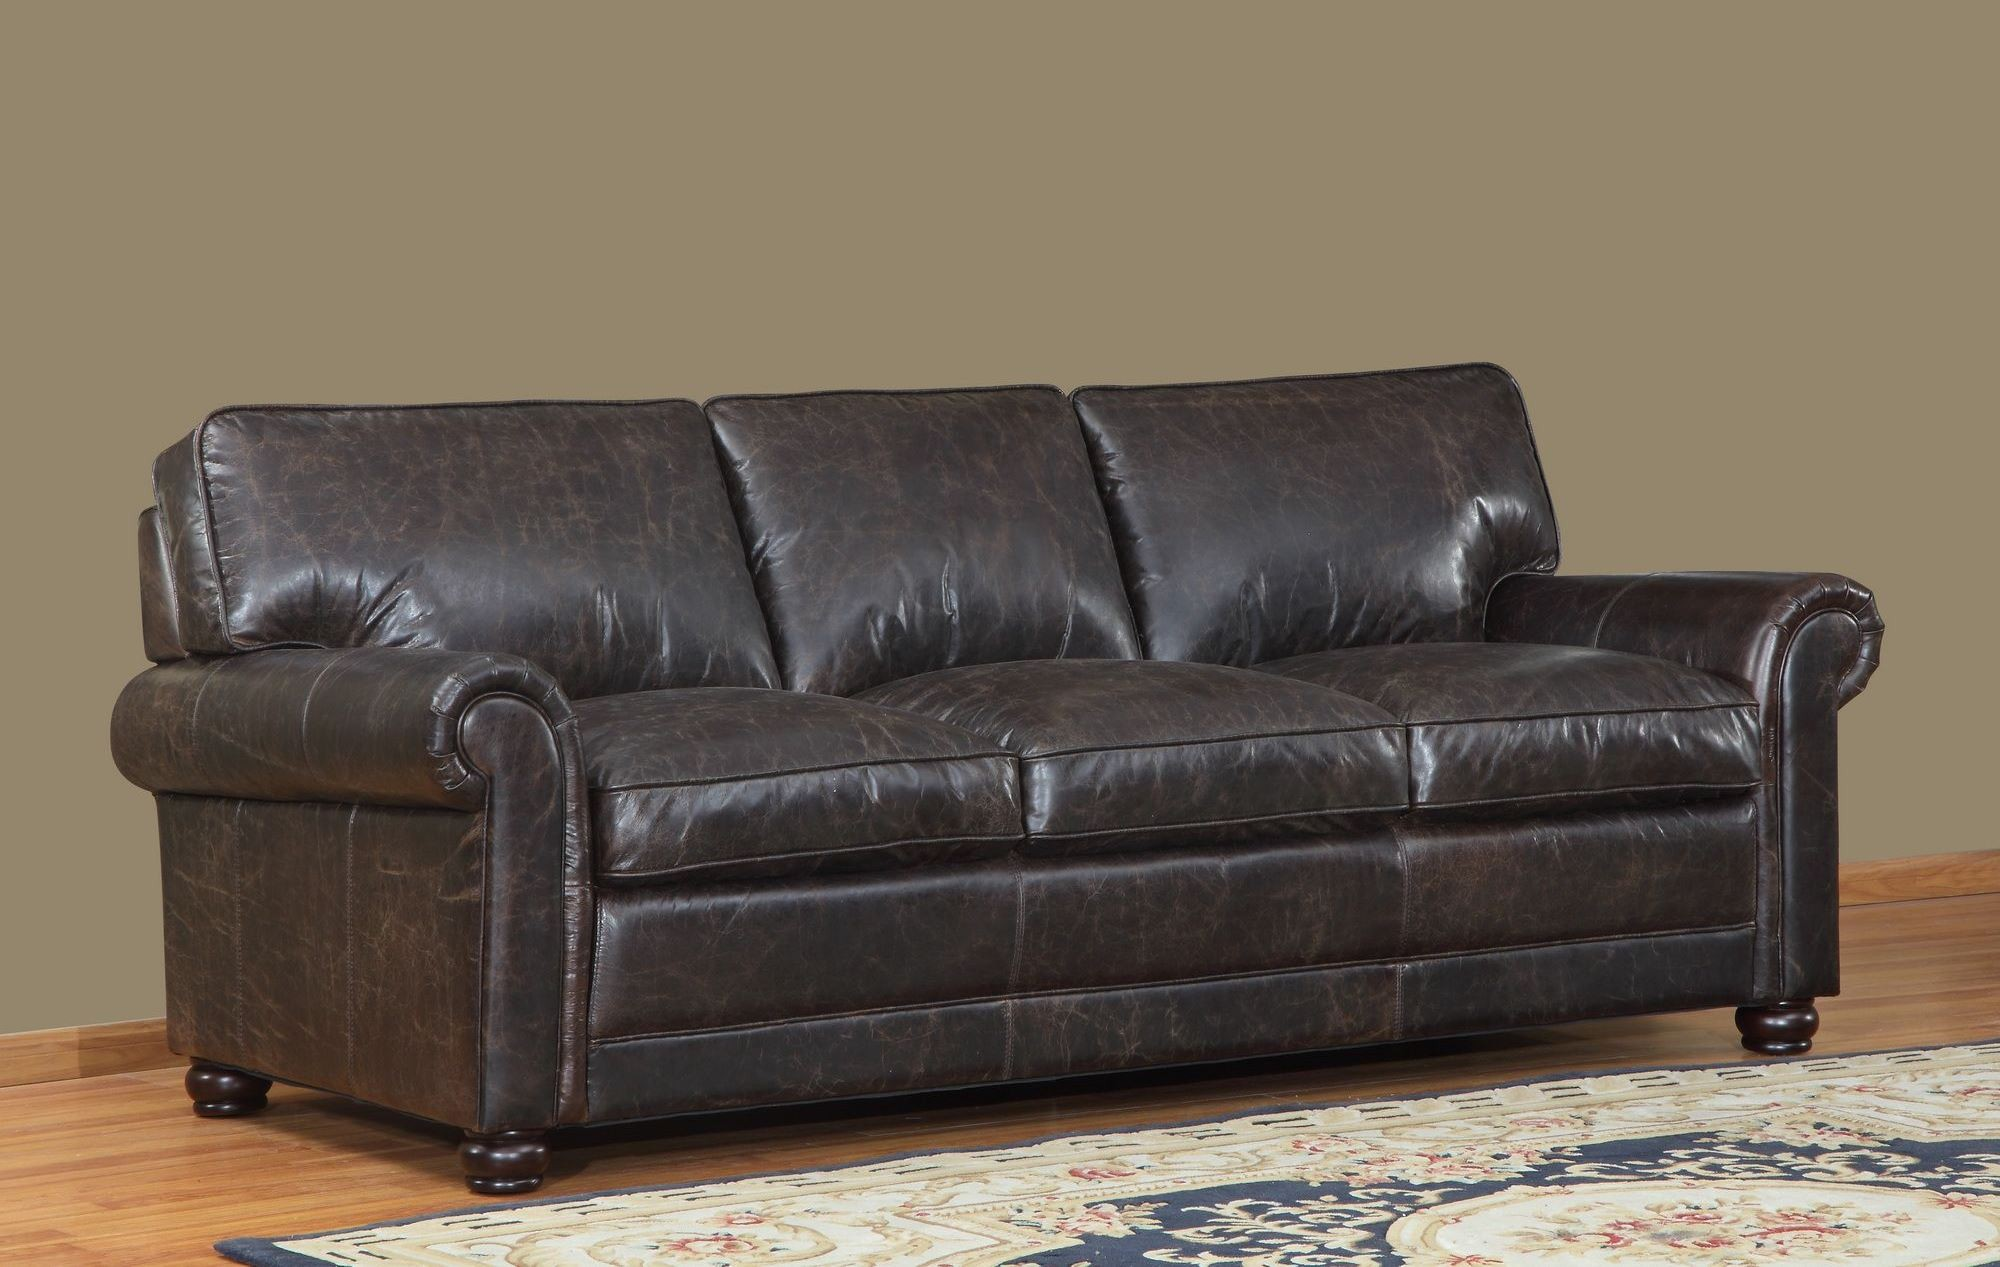 next brompton leather sofa single seater beds uk genesis chocolate from lazzaro wh